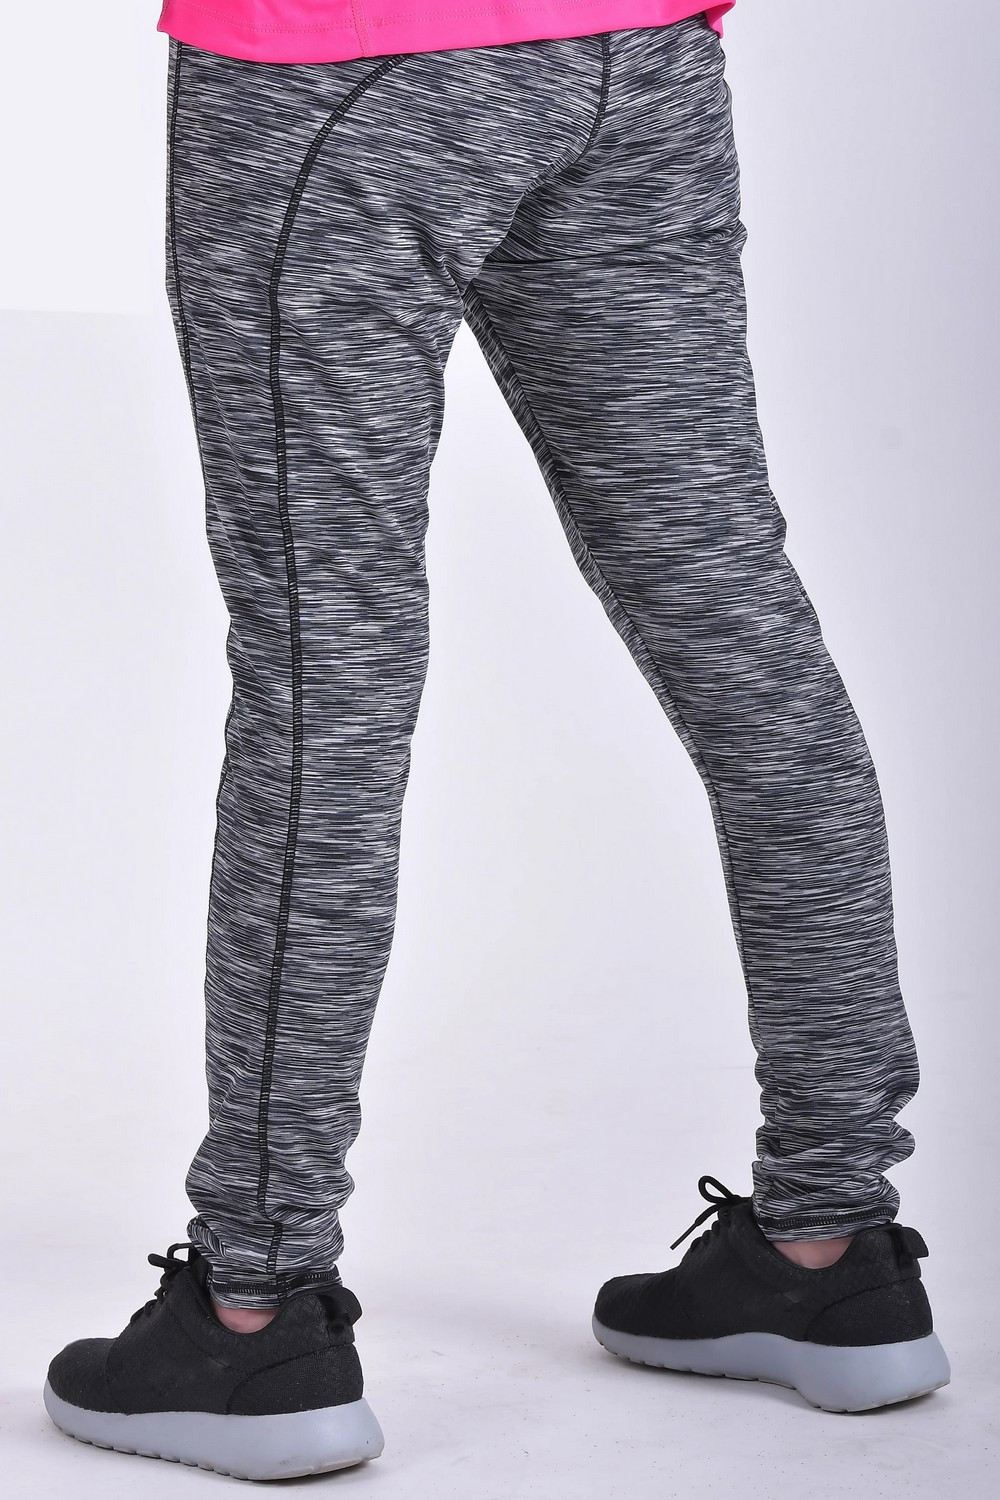 Ladies Sportswear Dri Fit Yoga Pants Premium Quality